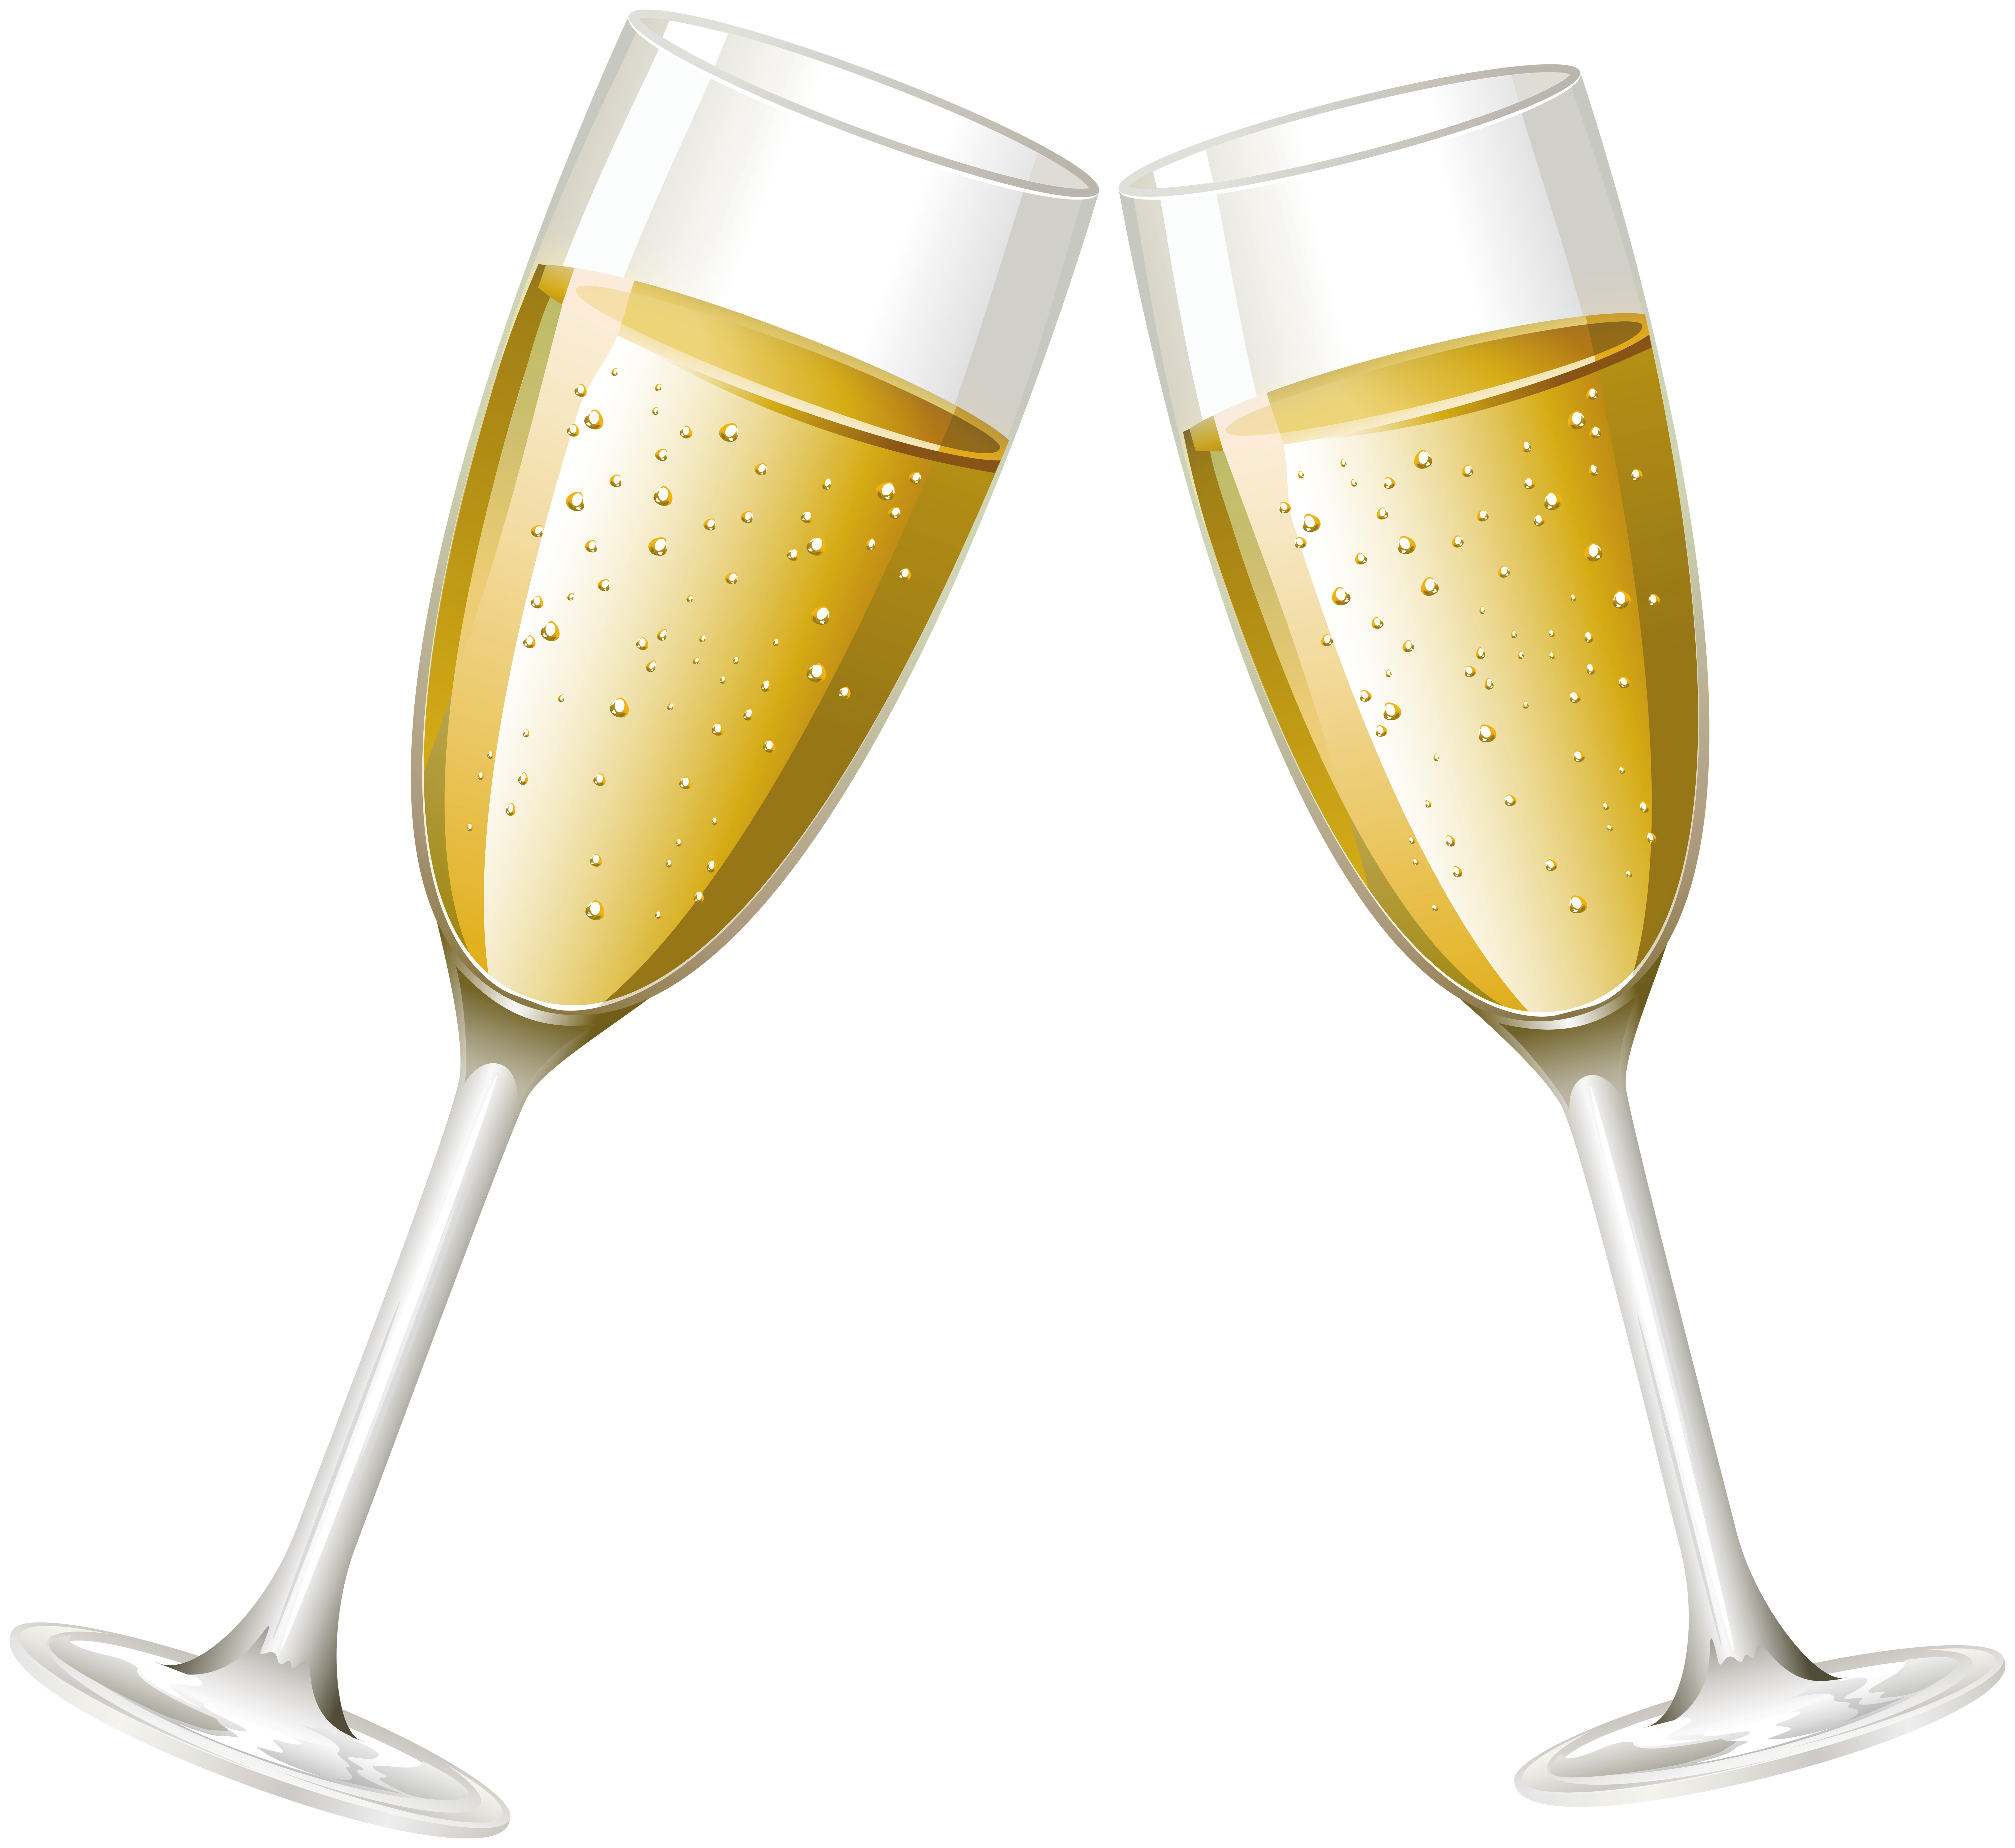 Champagne Glasses PNG Clip Art Image.